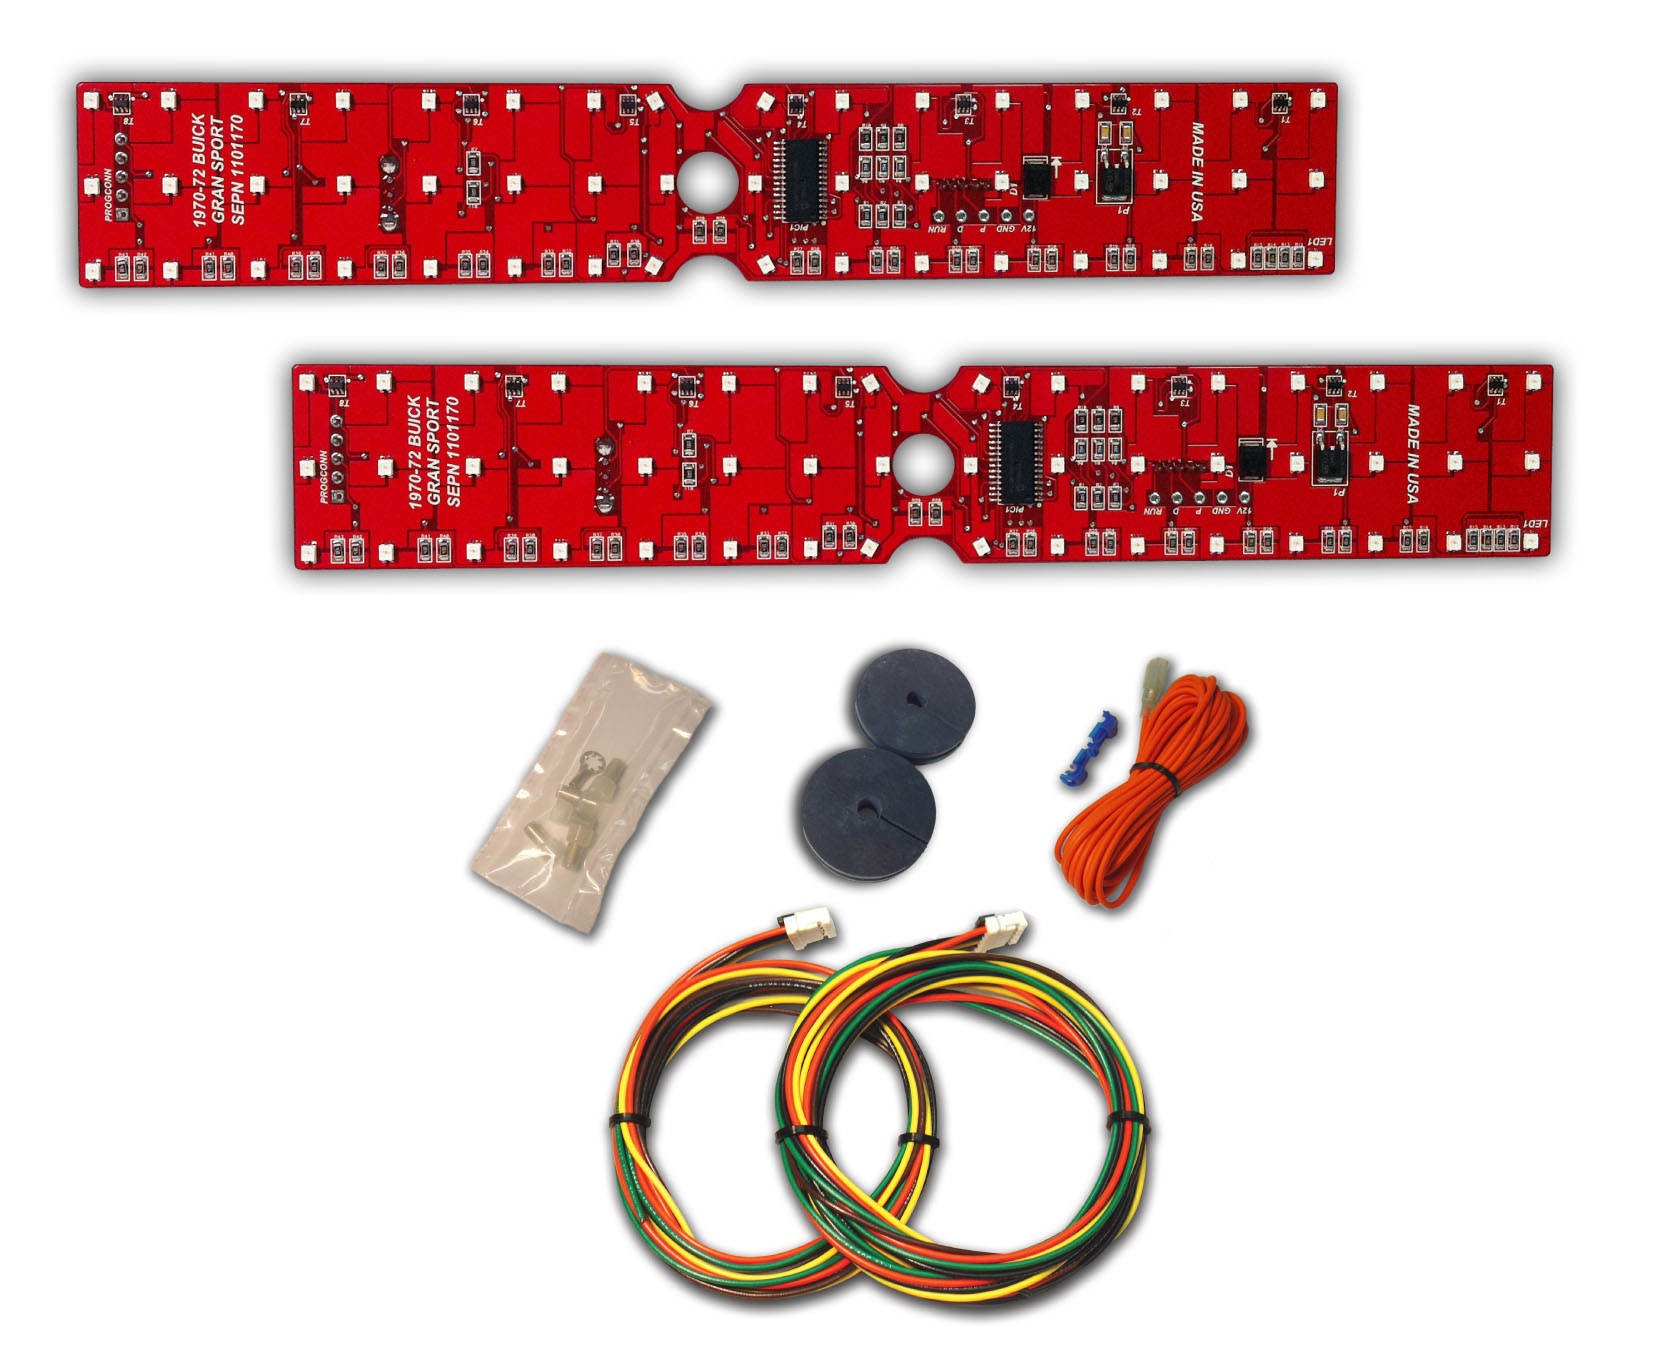 1968 Buick Gran Sport Wiring Diagram Trusted Light 78 Chevy Nova 1970 Rear Lights Harness 1956